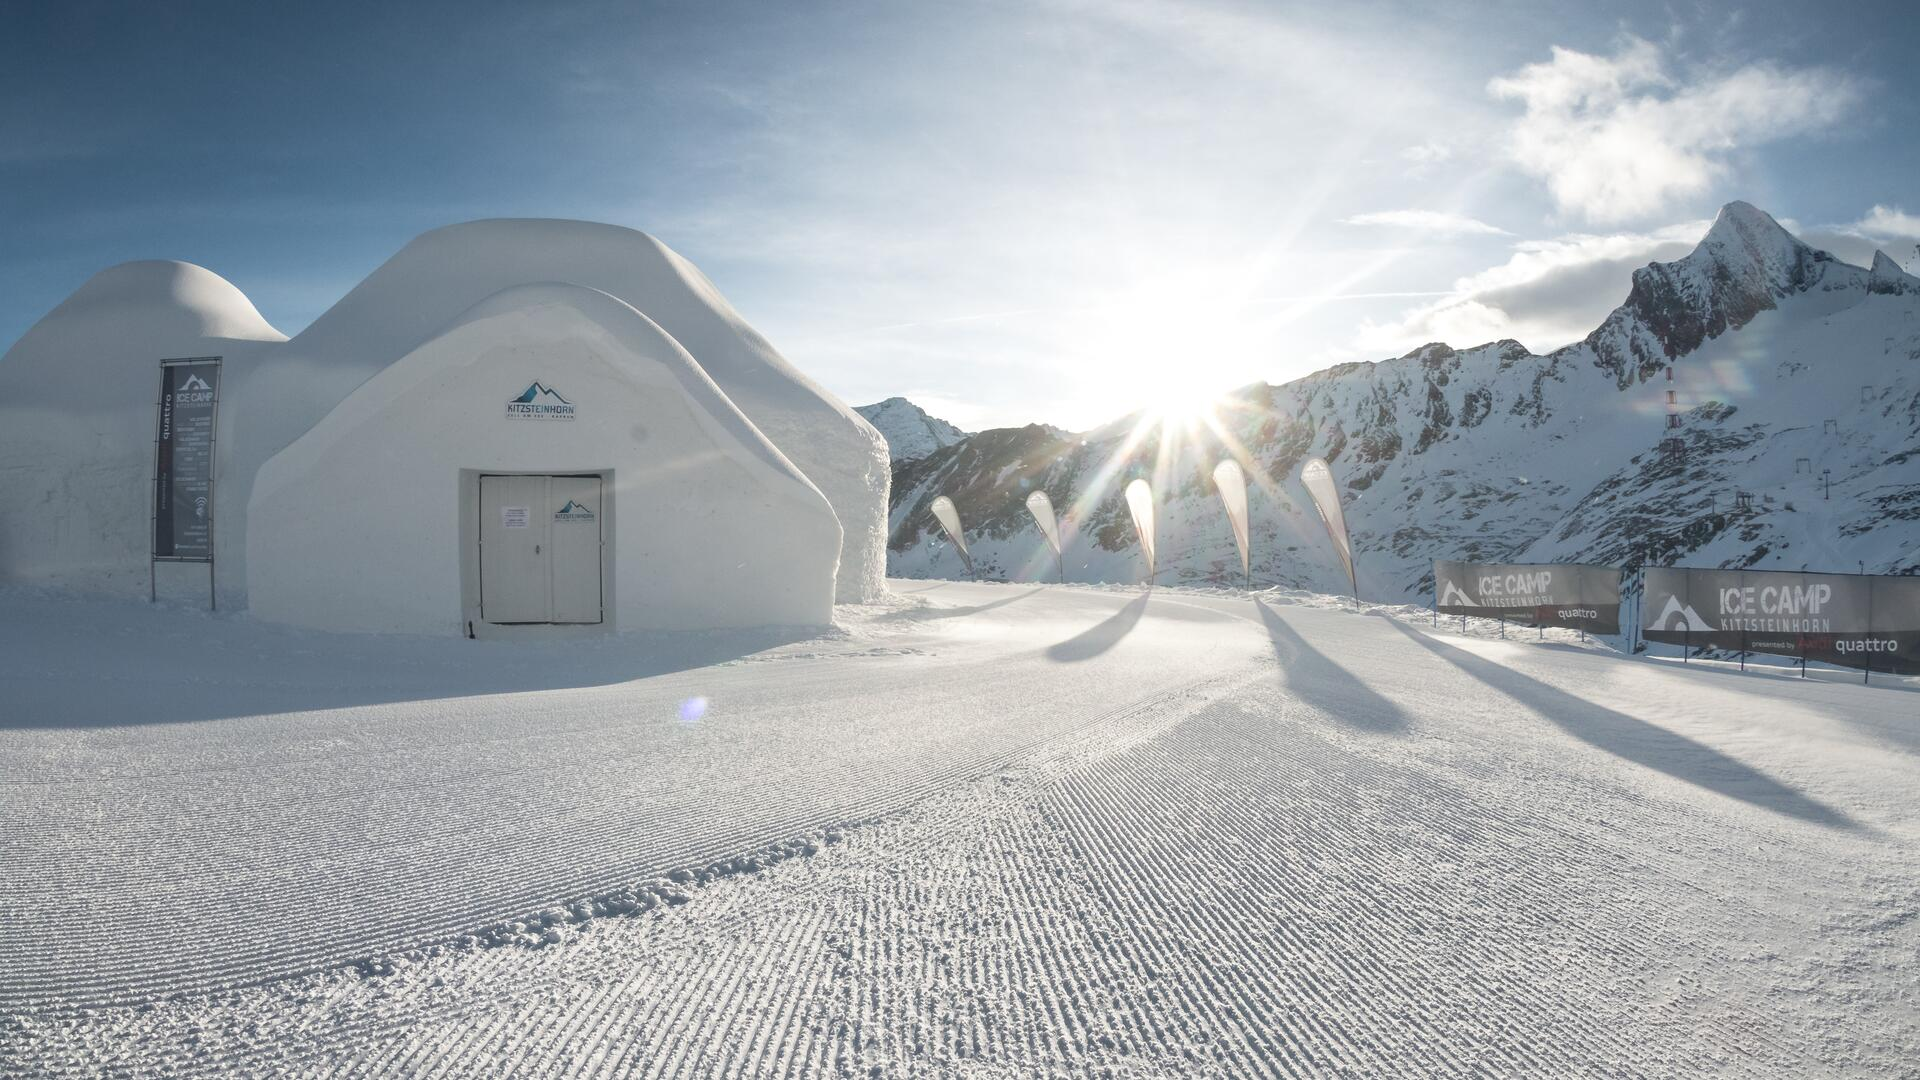 The ICE CAMP presented by Audi quattro is THE meeting point in the Kitzsteinhorn Glacier ski resort in Kaprun